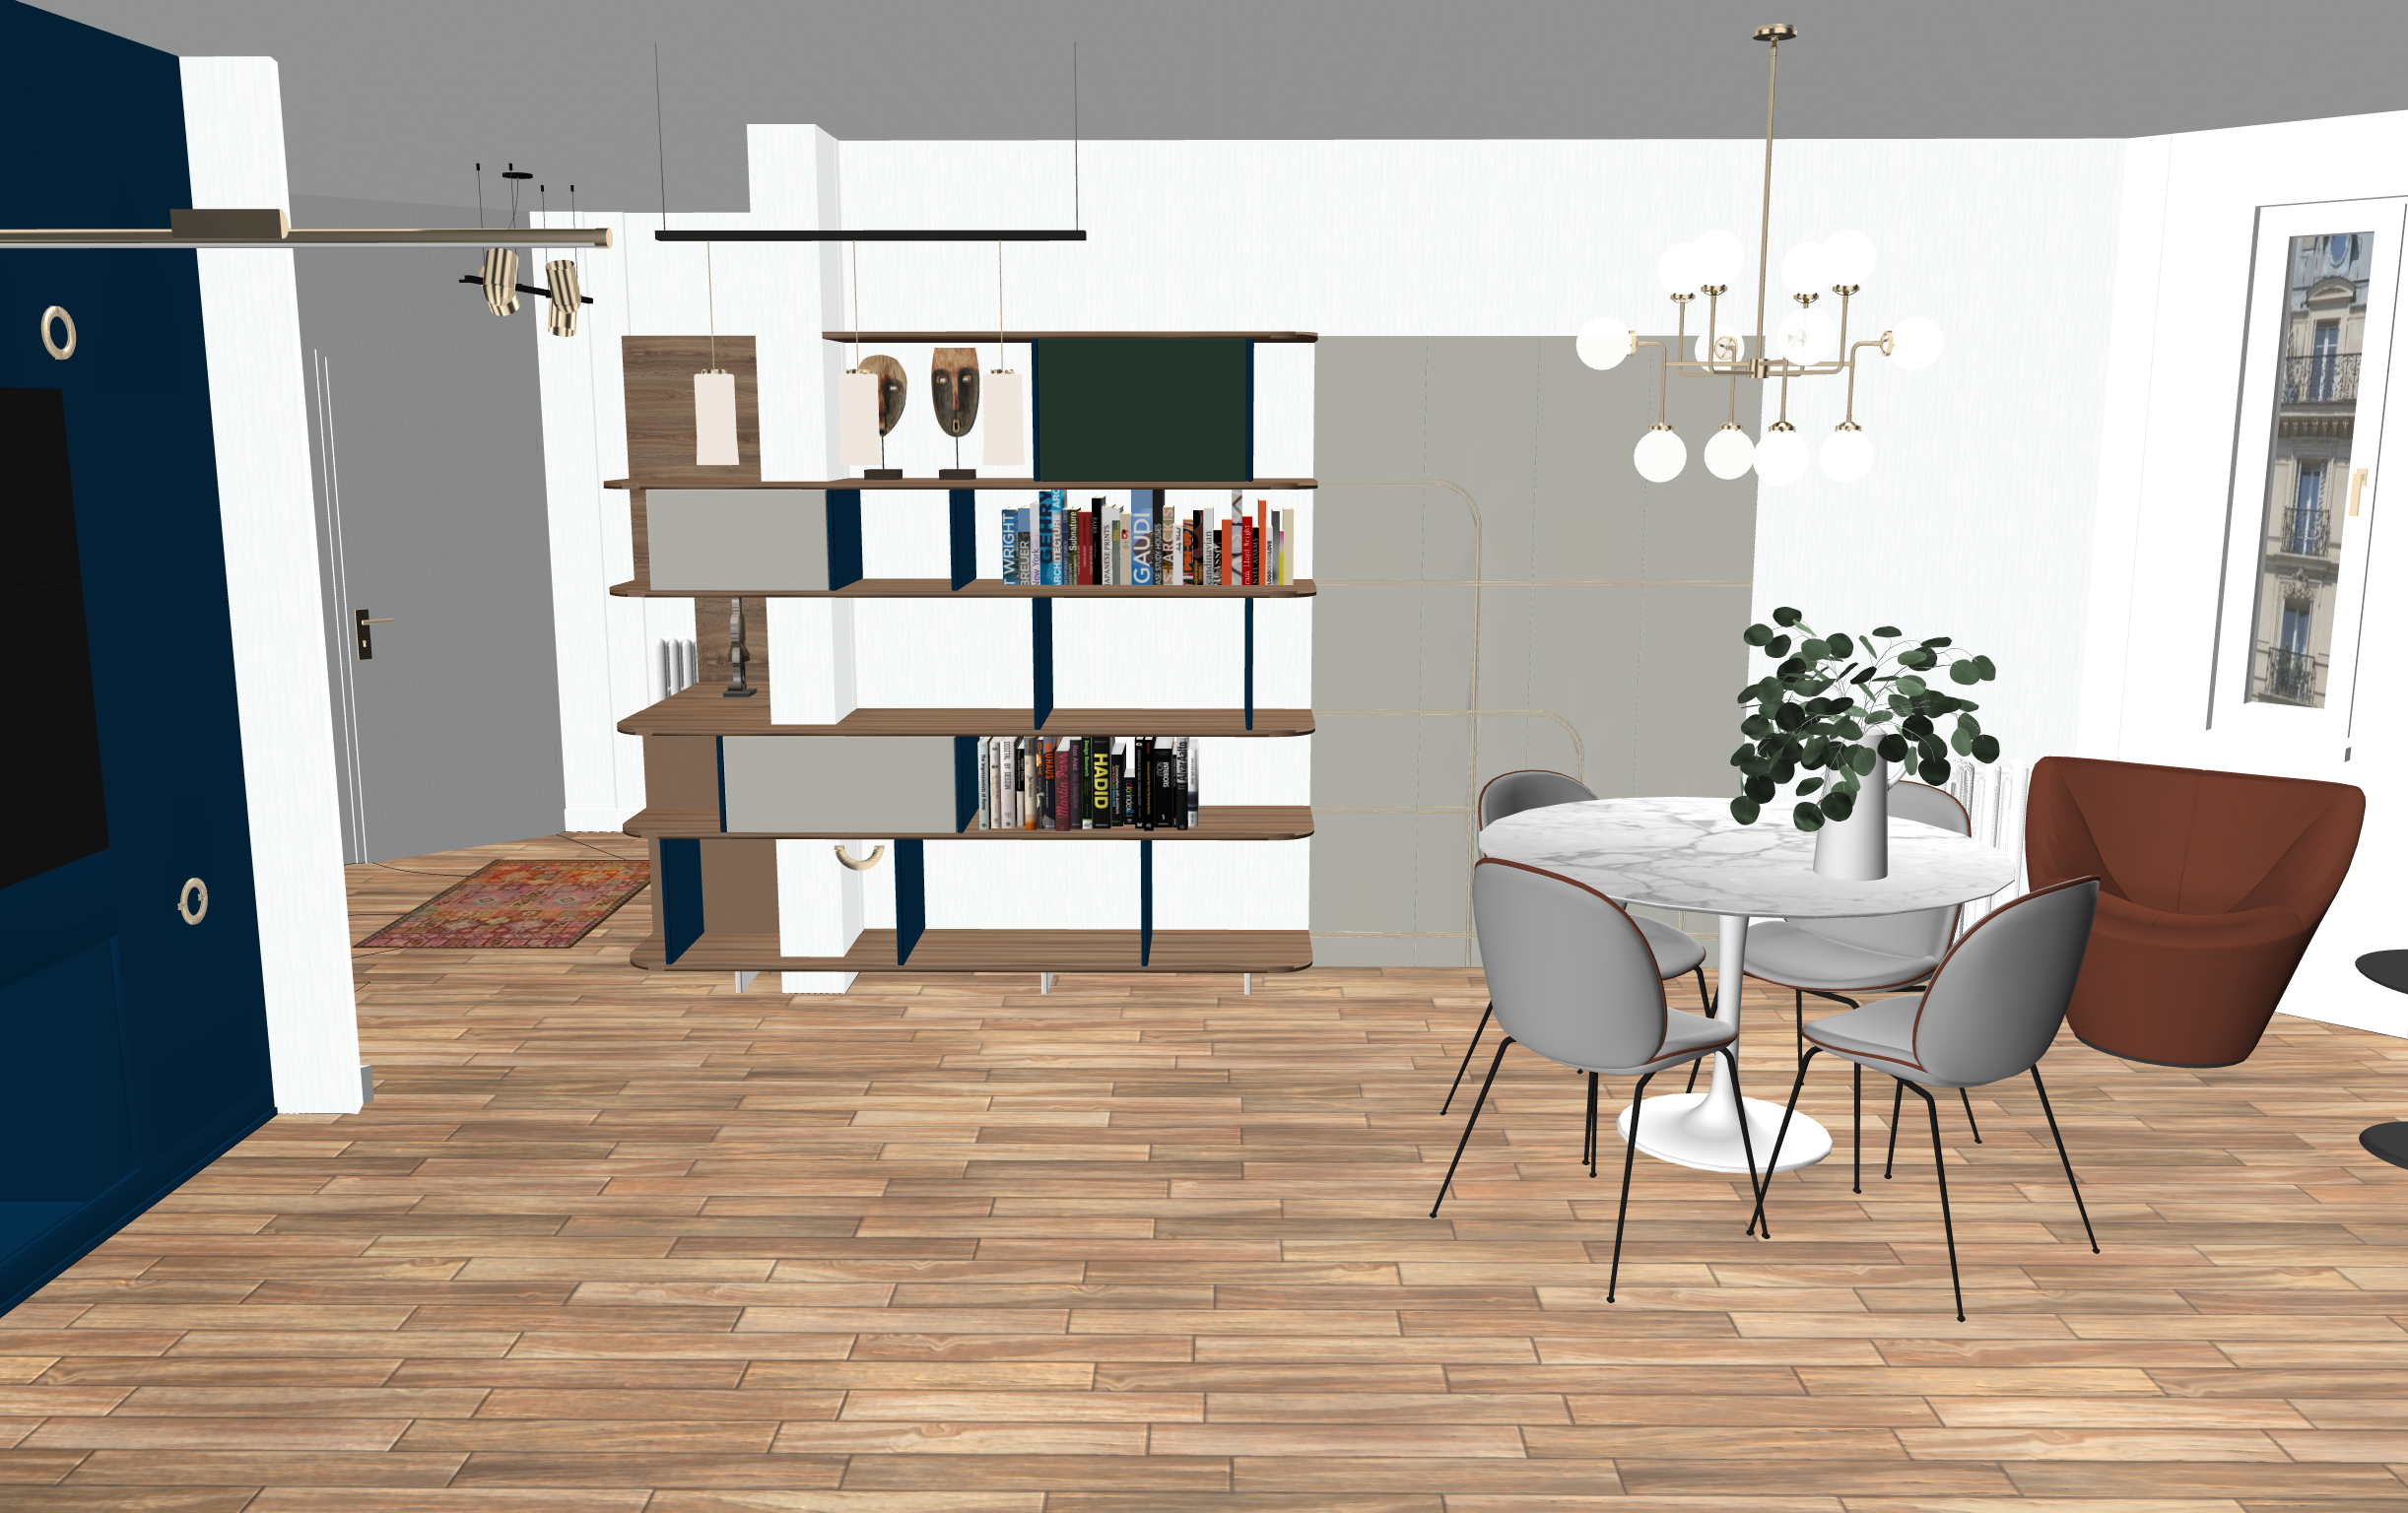 maison_bou_2019_neuilly_3d_6.png